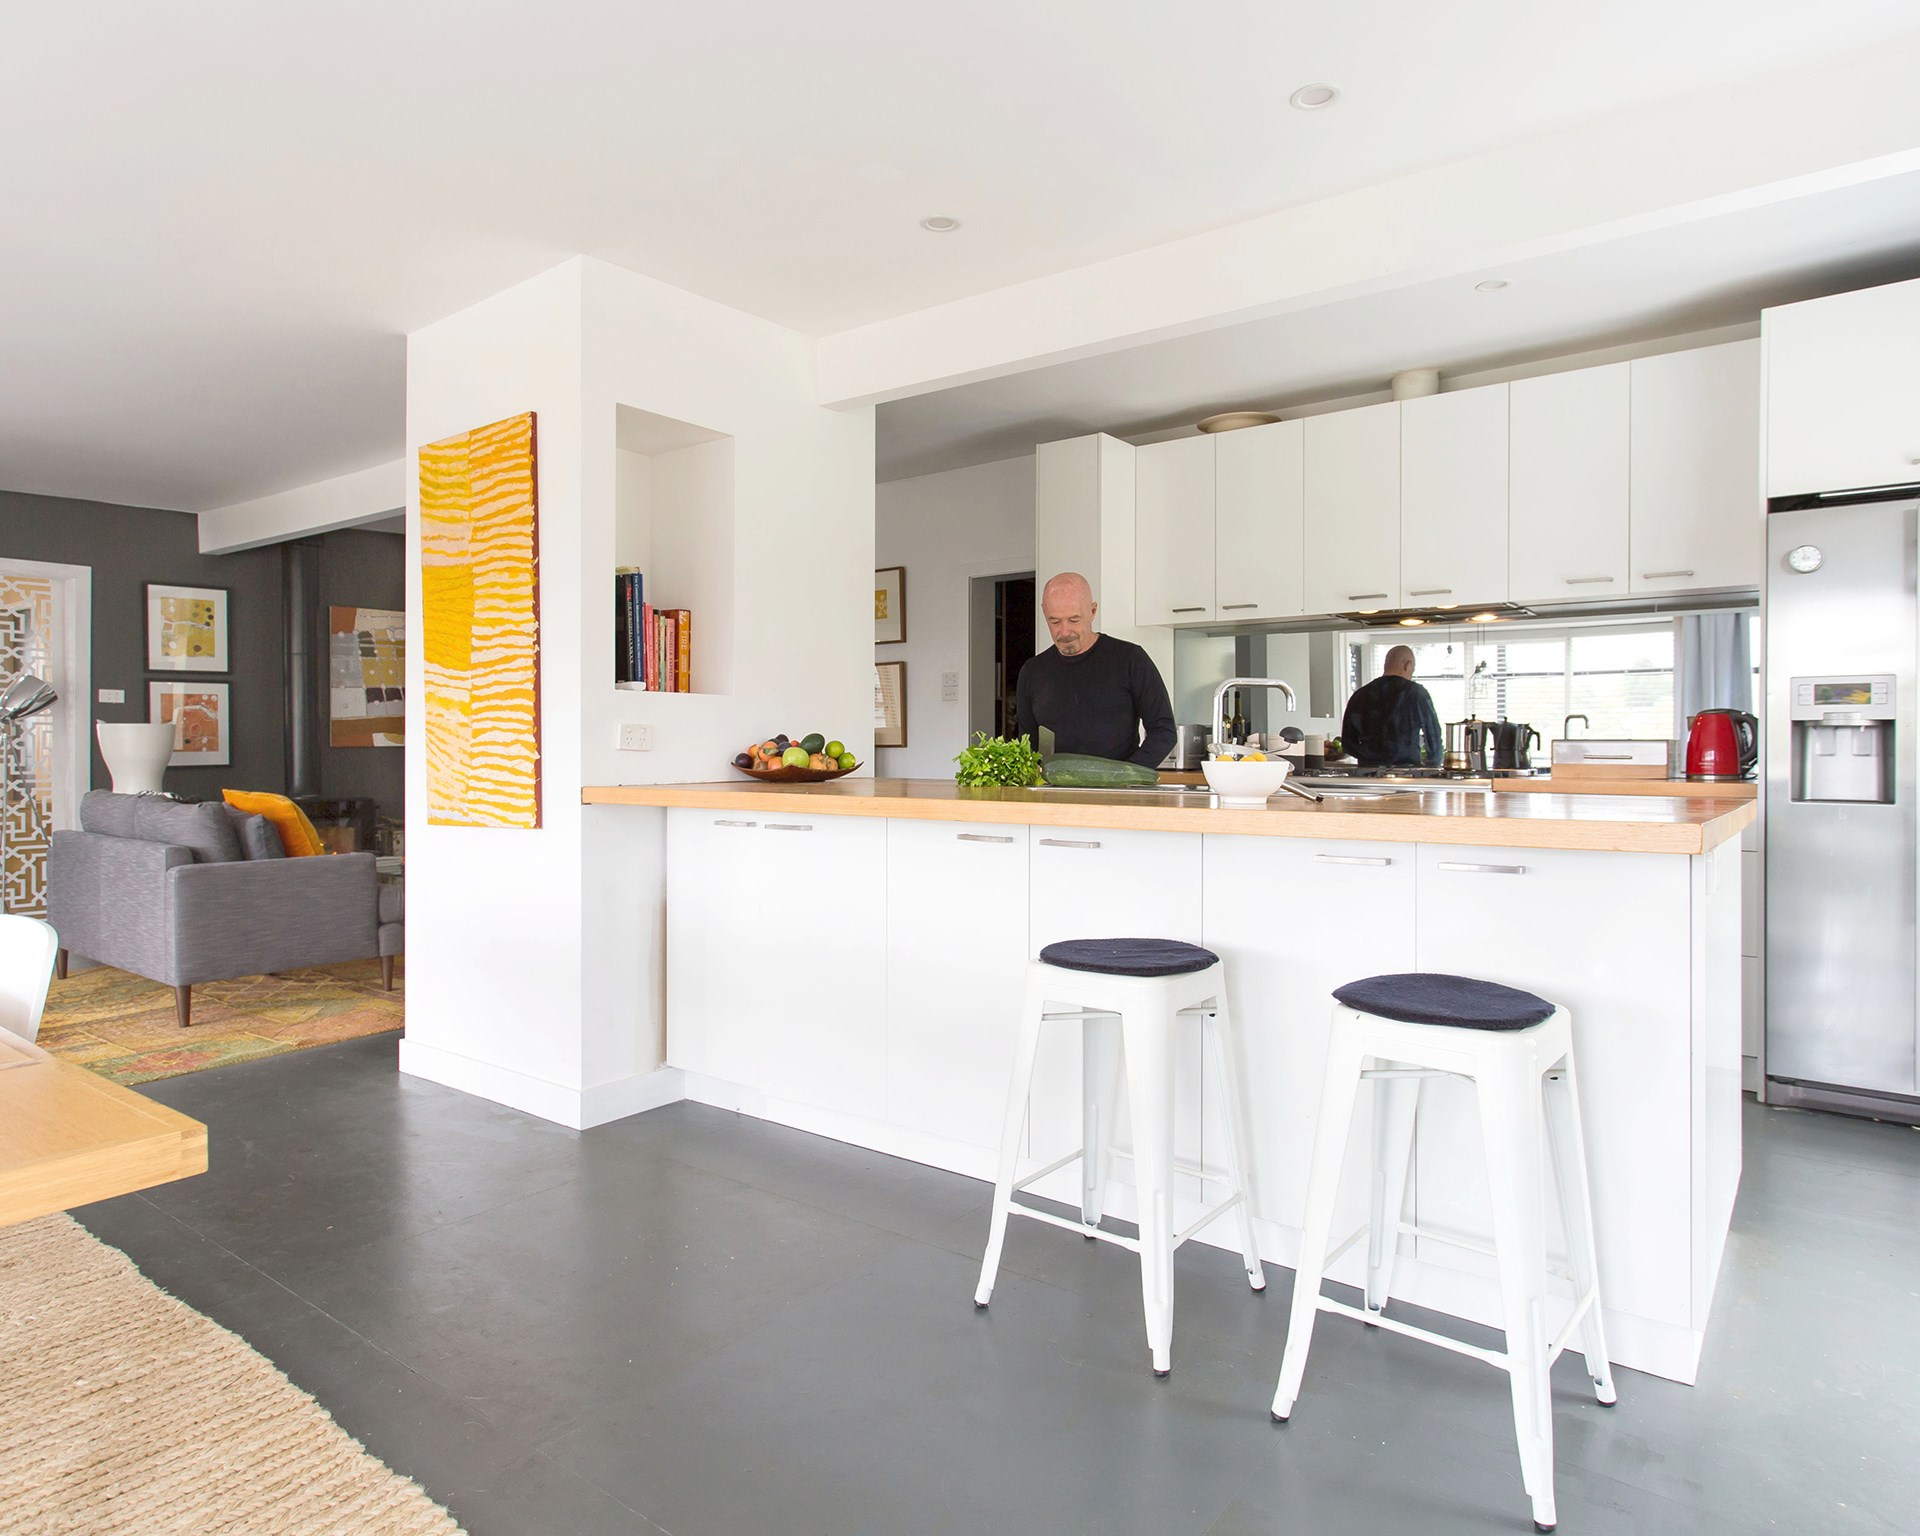 """**Greg Mallyon** Formerly known as the """"rat house"""" this old Victorian cottage has been transformed with mid-century-inspired style. [See the full home here](http://www.homestolove.com.au/old-victorian-home-gets-budget-renovation-3769) or [vote for this home](http://www.homestolove.com.au/homes-reader-home-of-the-year-4499)."""